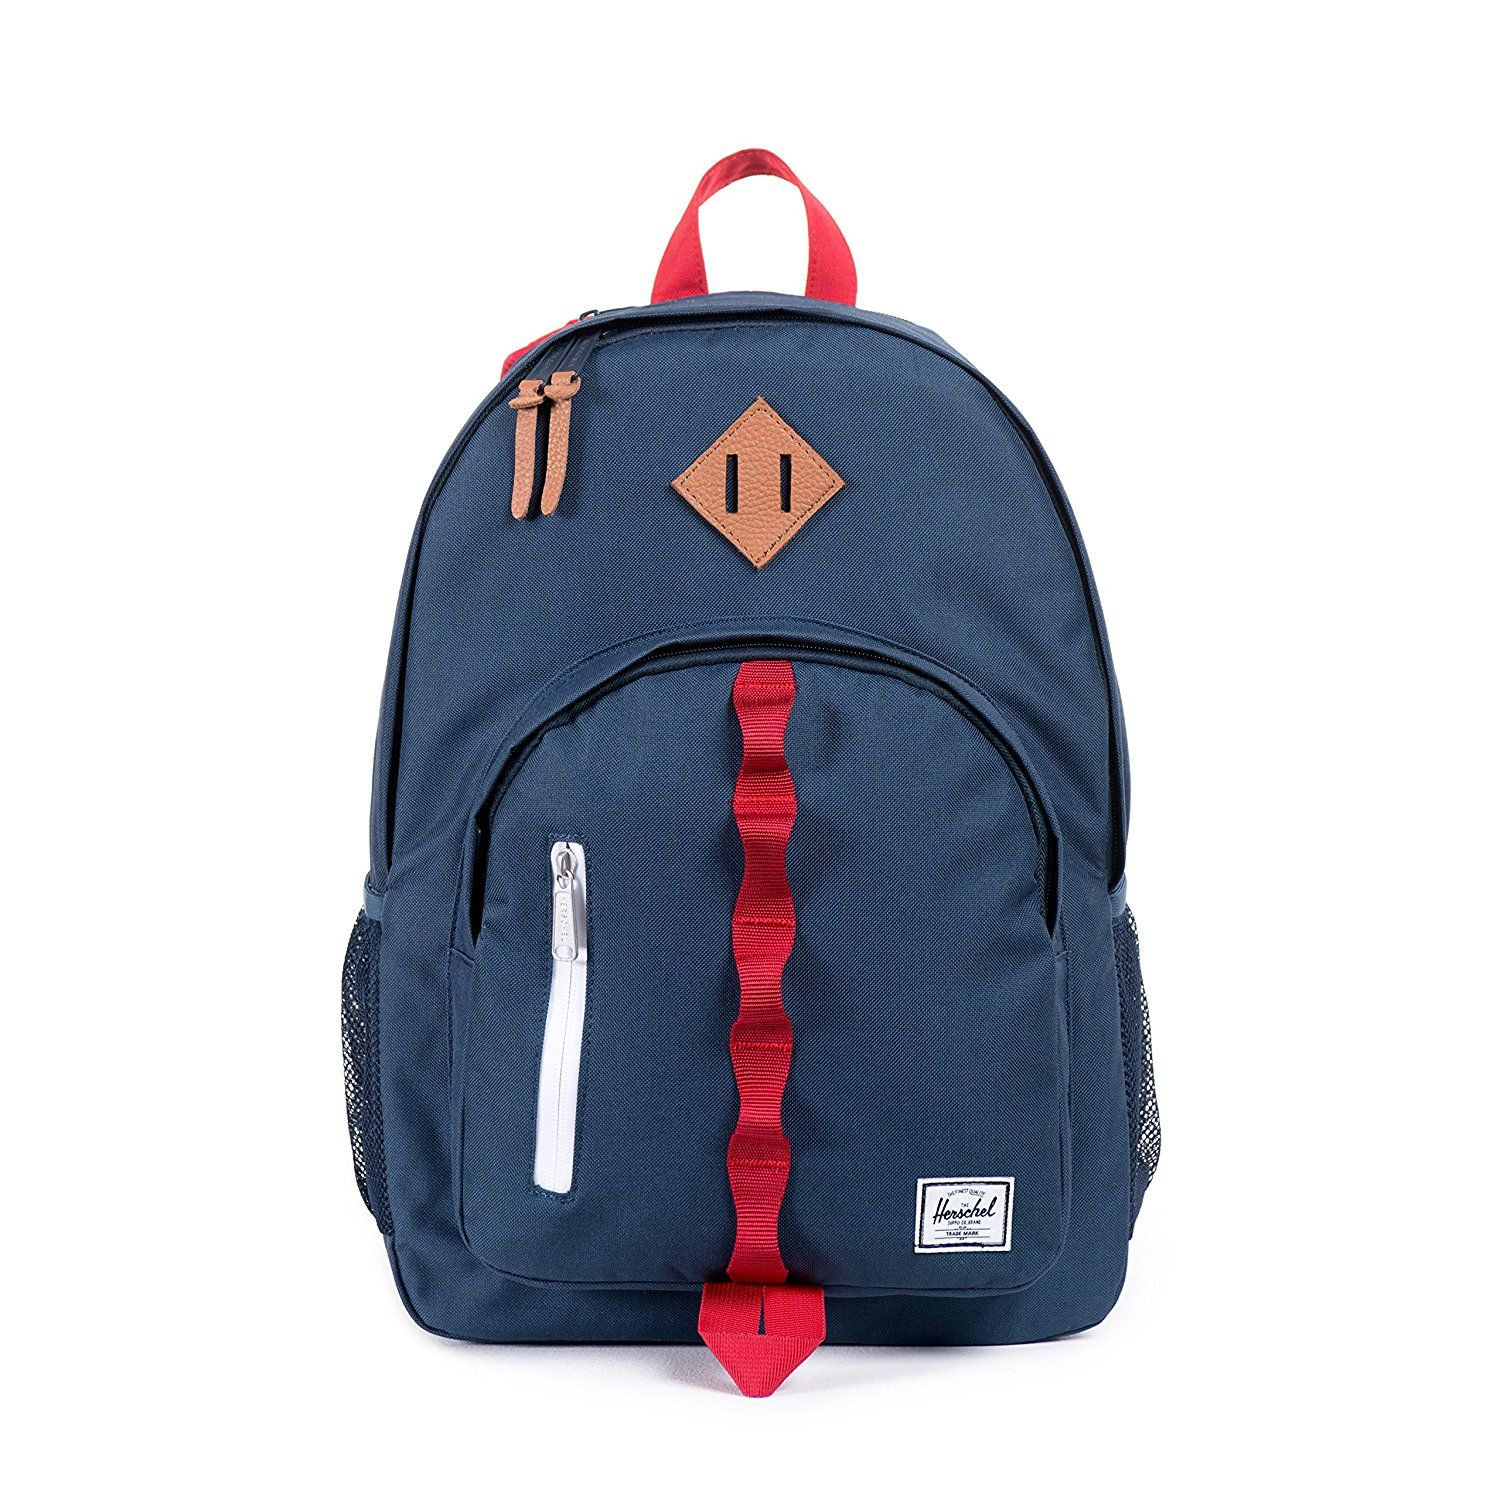 5d55308925 Herschel Supply Co. Parkgate Backpack     Click image for more details.  (This is an Amazon Affiliate link and I receive a commission for the sales)